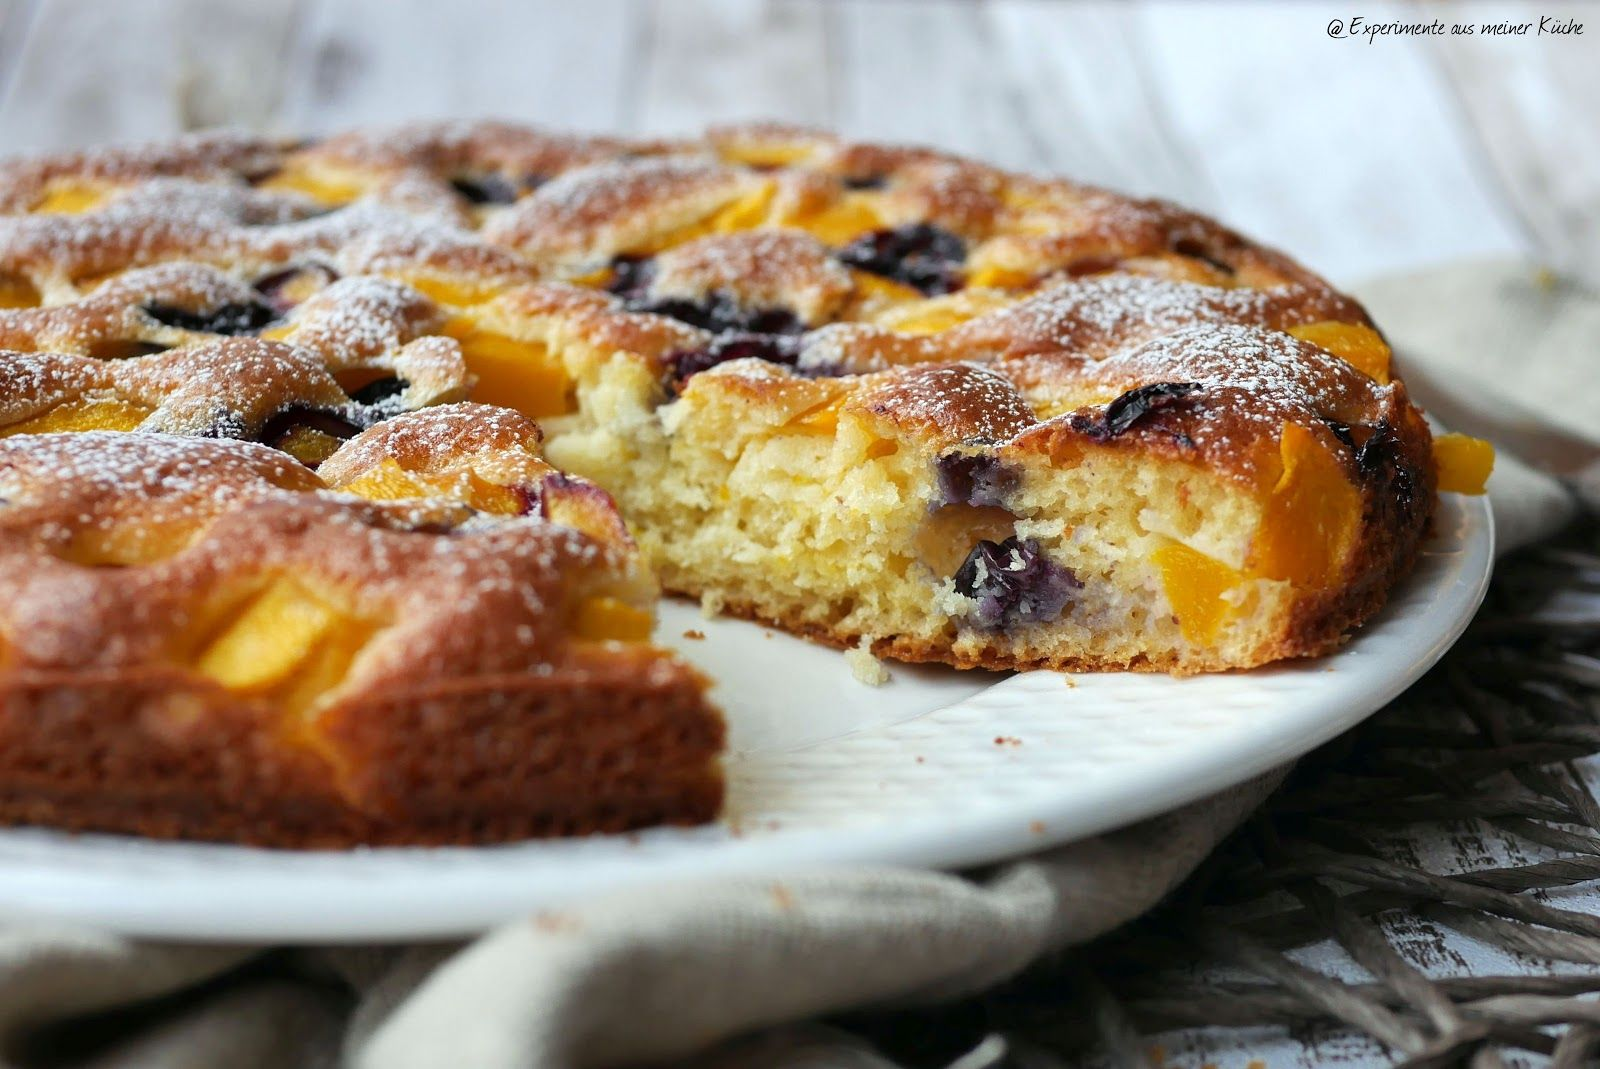 Weight Watchers Schnelle Kuchen Blaubeer Mango Tarte Sweet Bakery Cake Baking En Kuchen